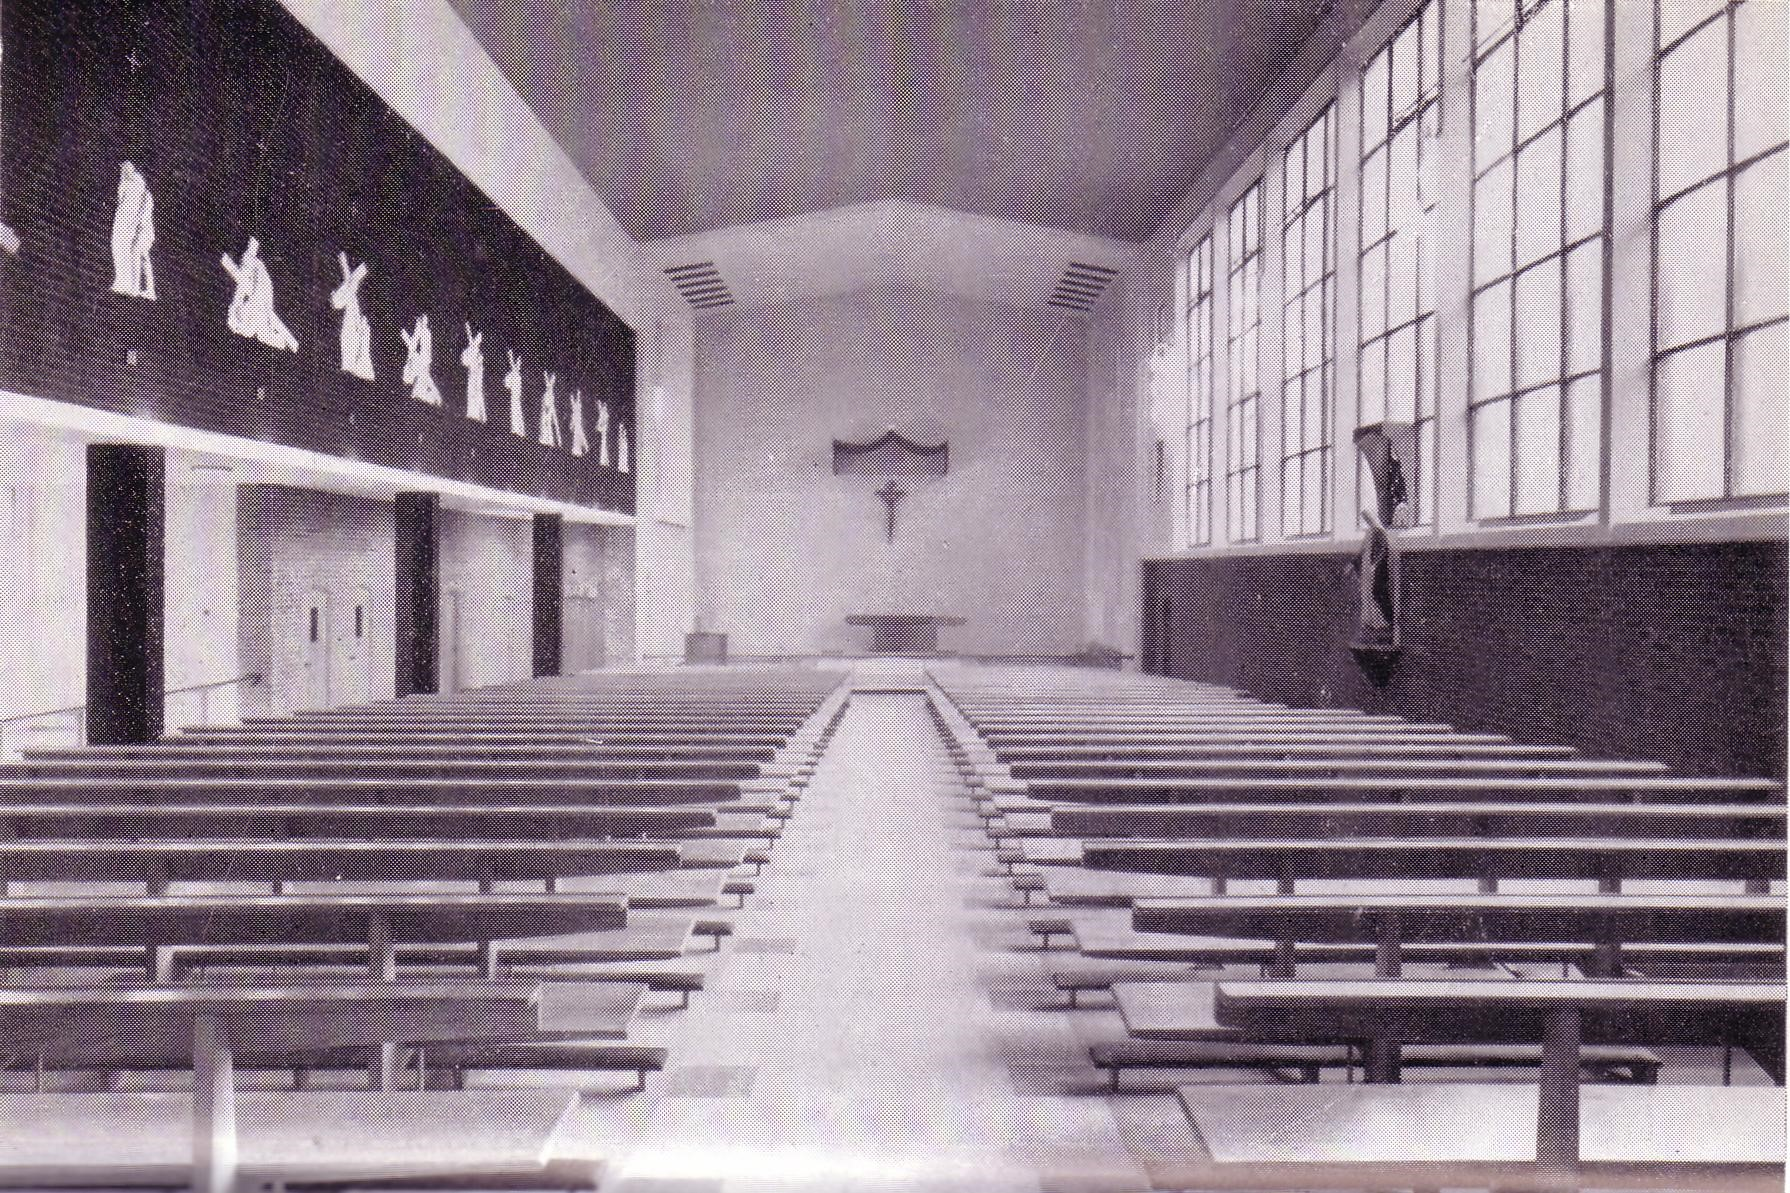 New church interior